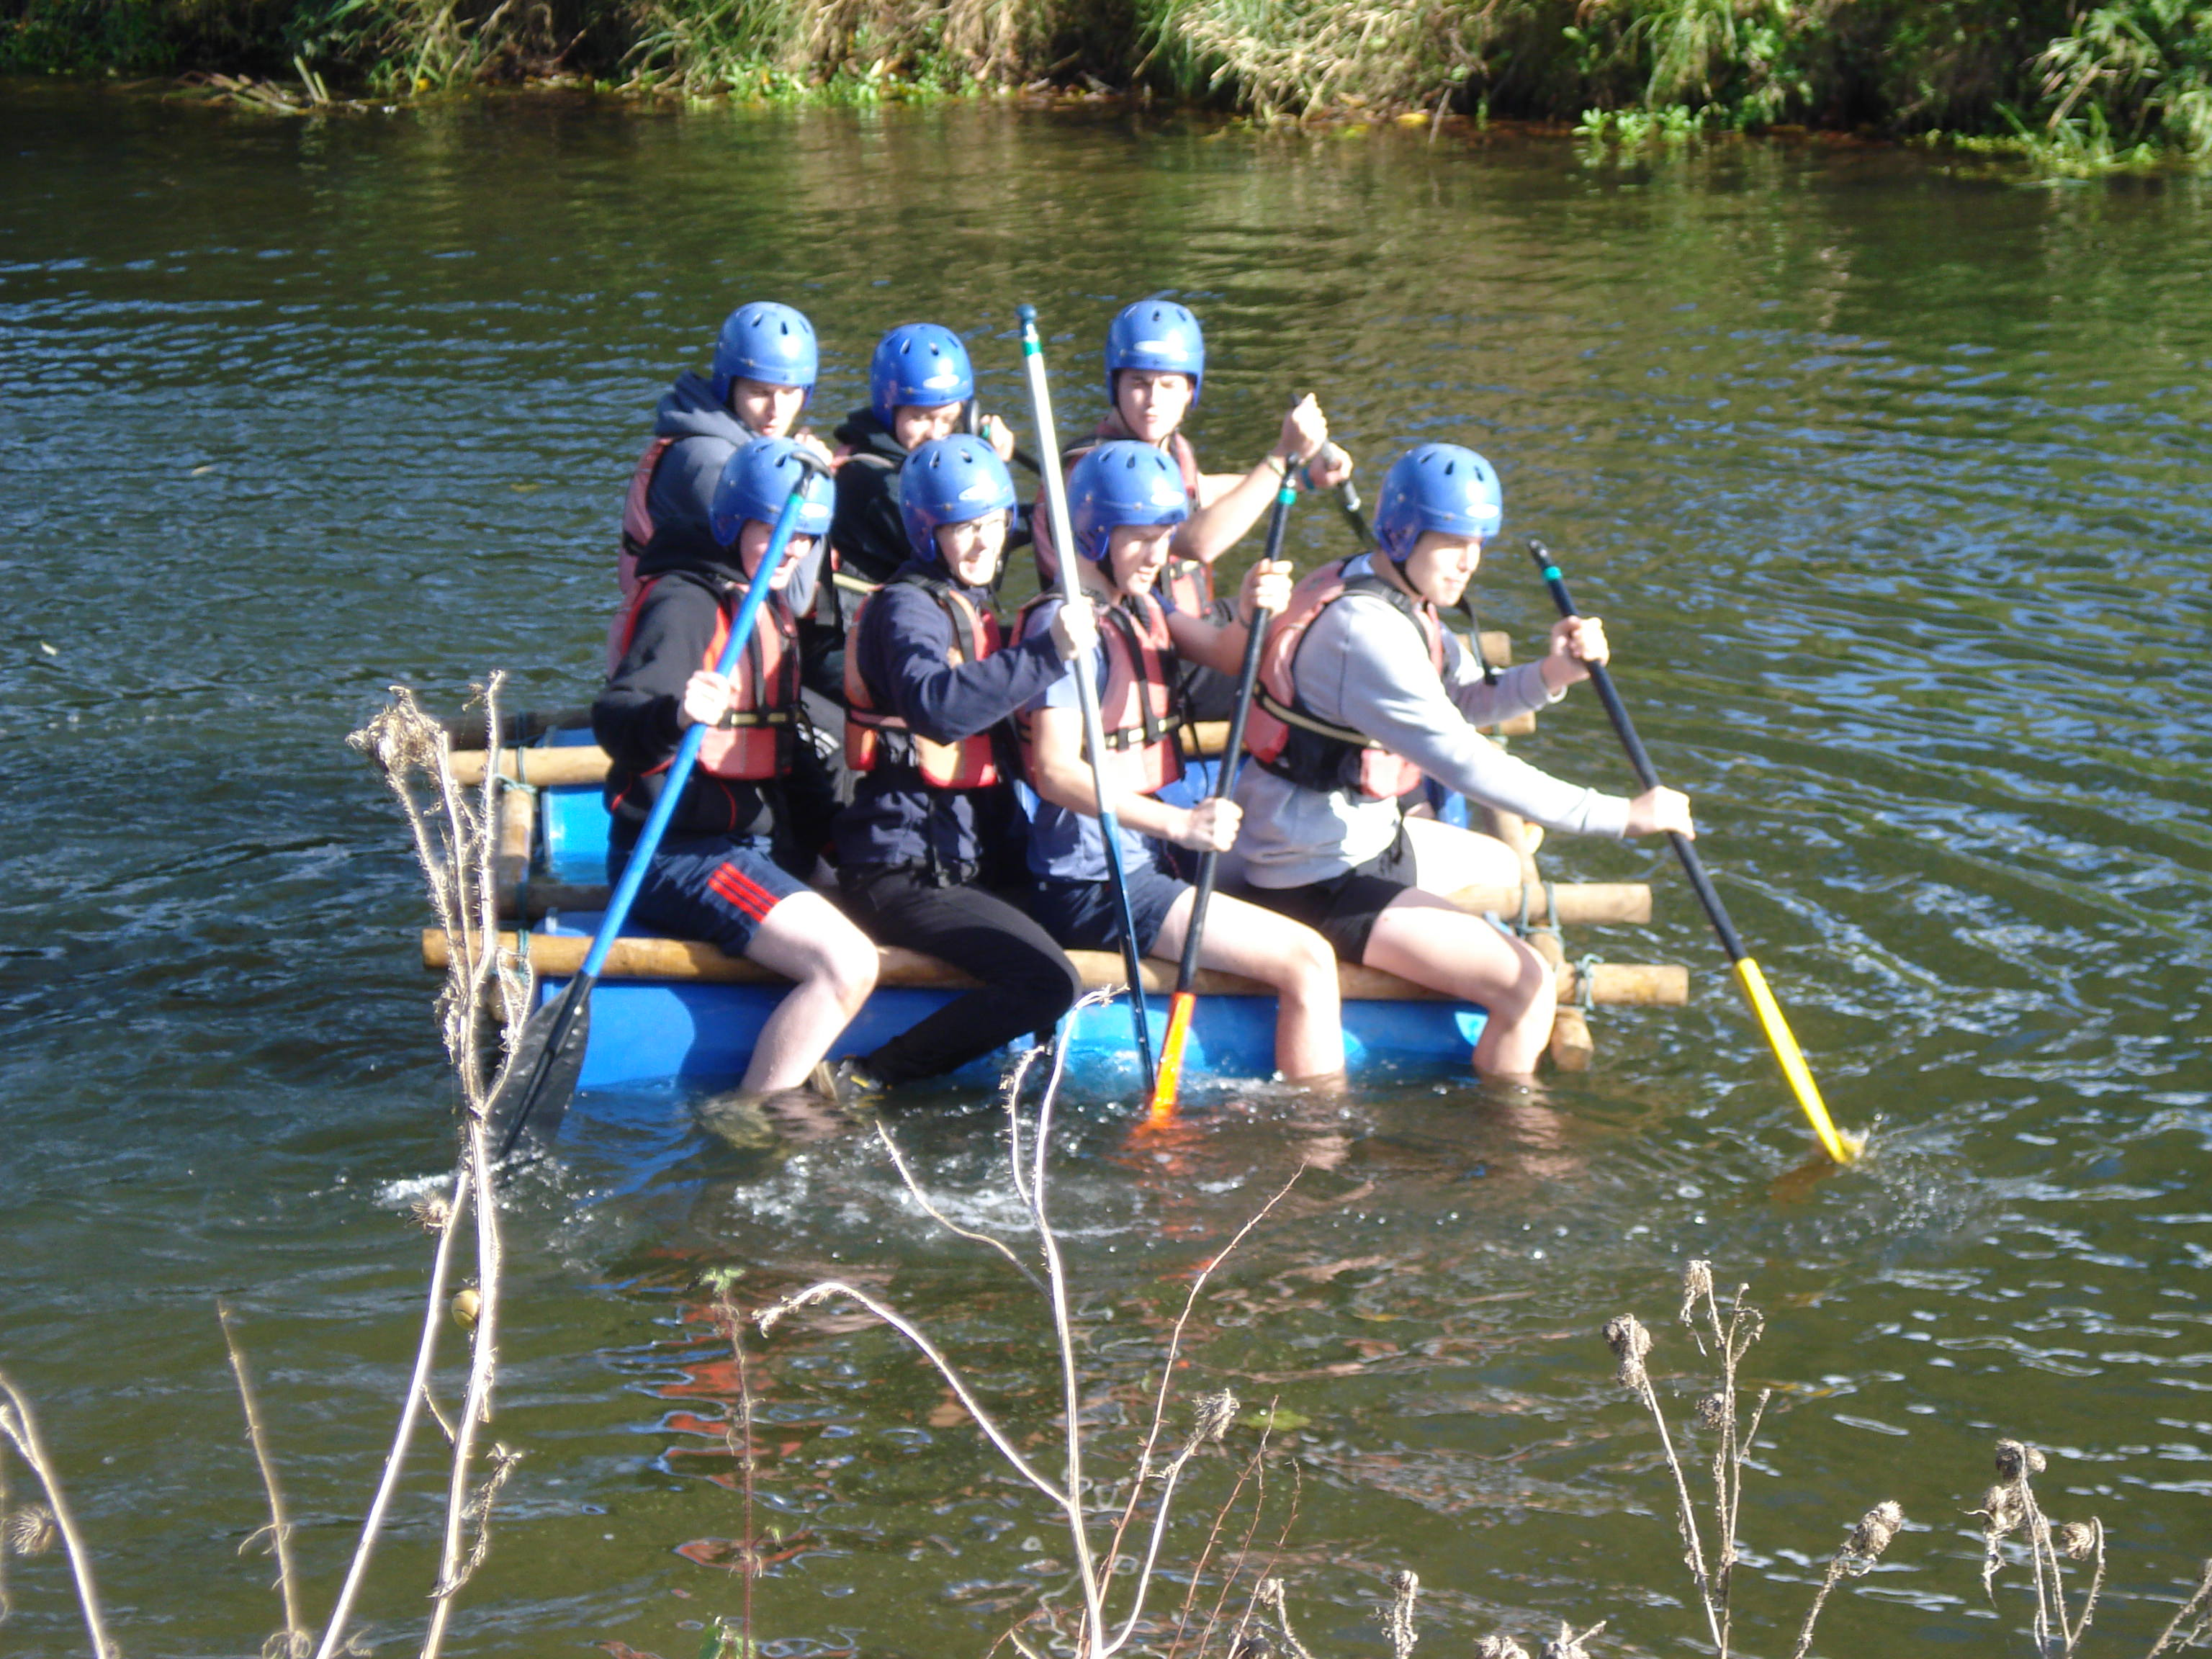 Sixth Formers Enjoy Team Building Day at Frontier Centre